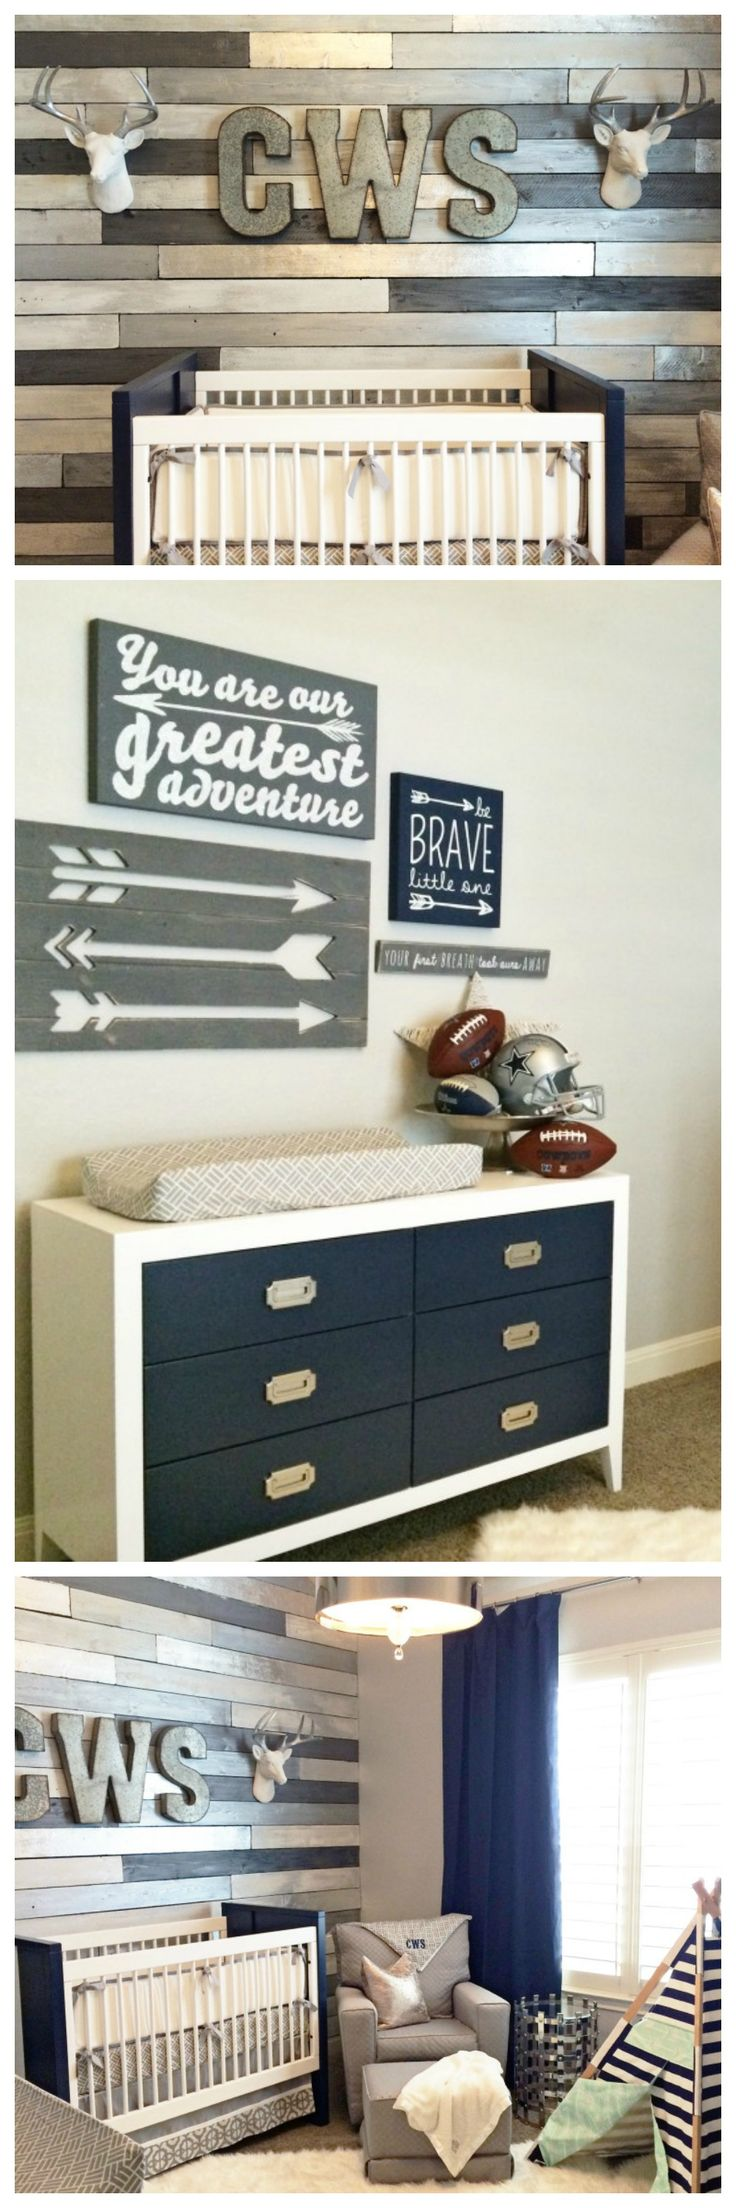 Metallic Wood Wall Nursery - love the rustic, yet modern decor in this baby boy room!